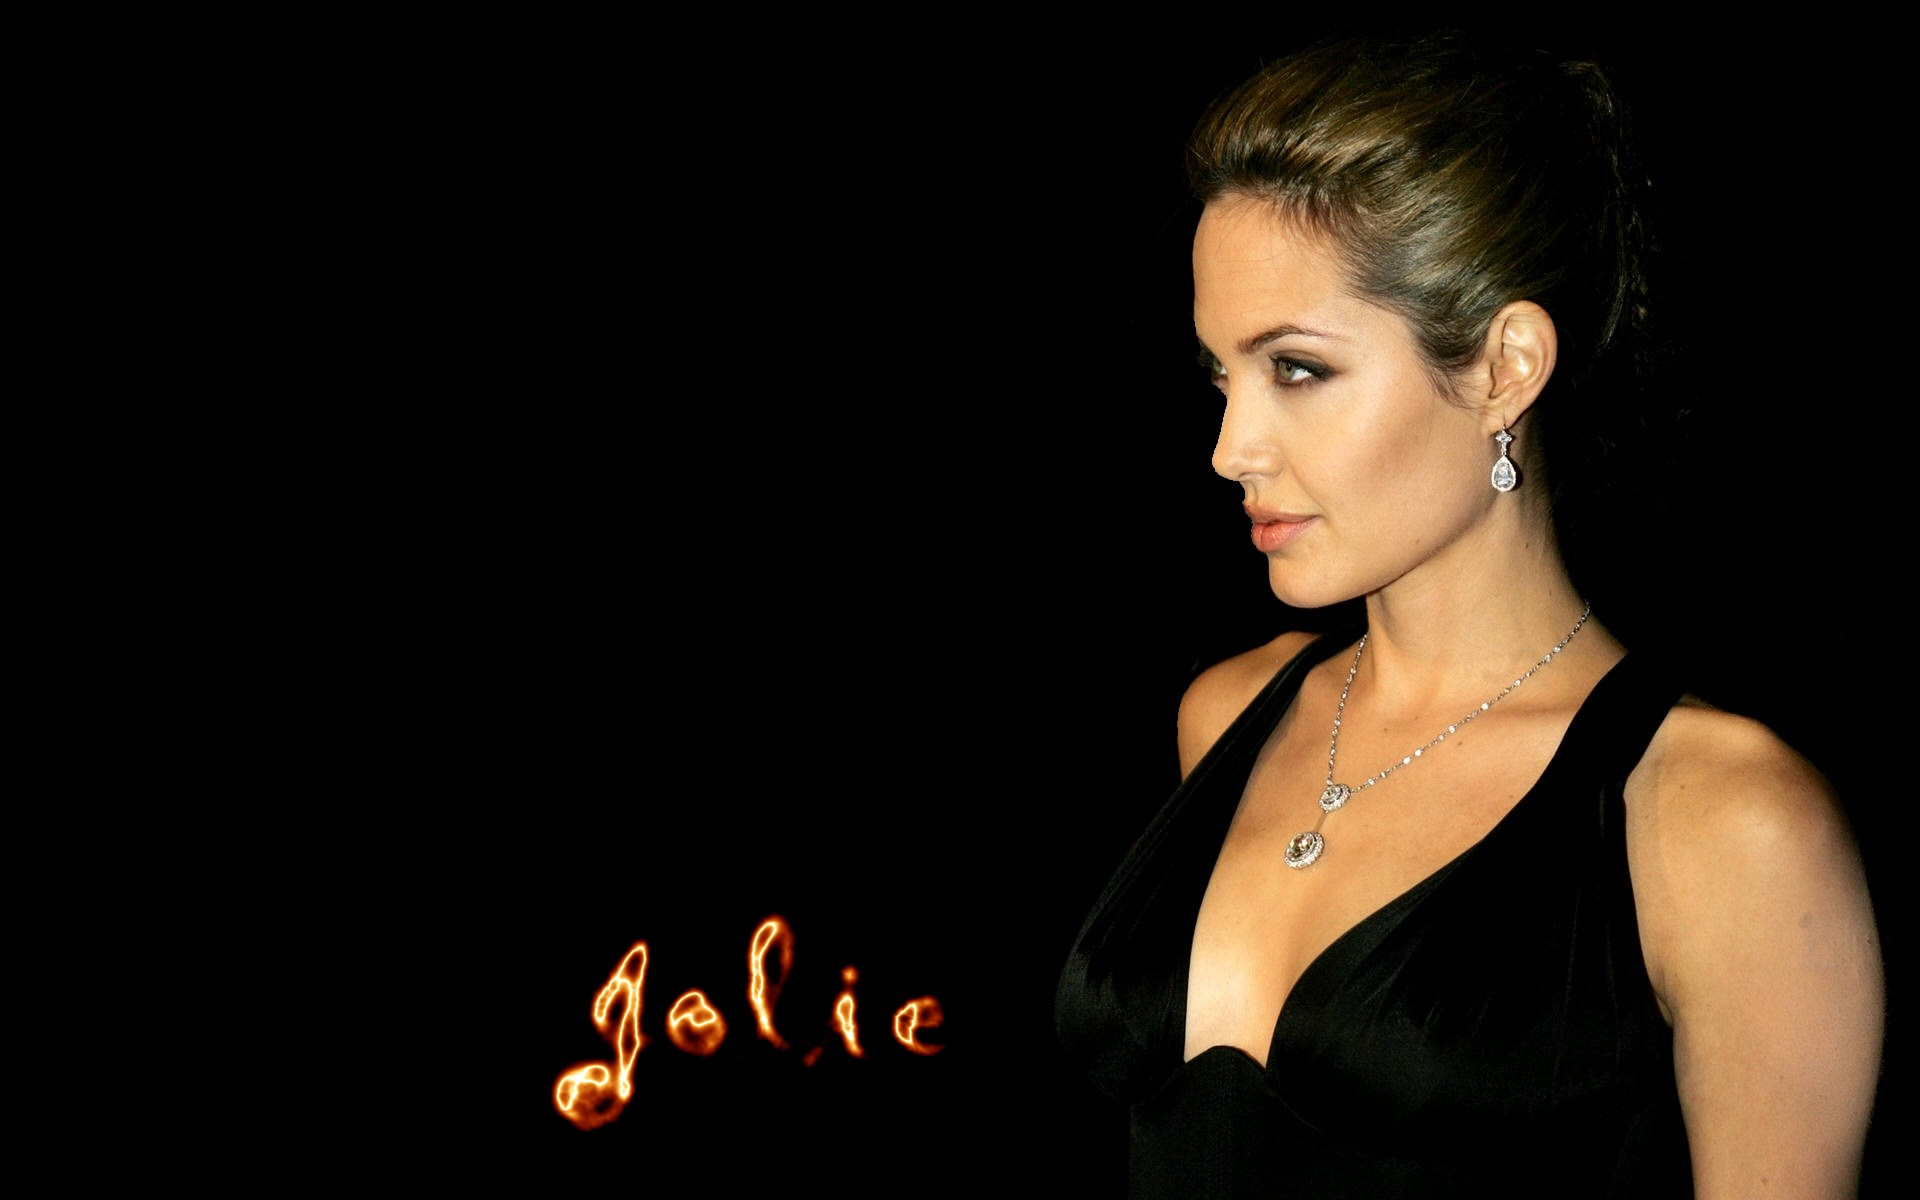 Angelina Jolie Hd Wallpapers: Fire On Her Name HD Wallpaper